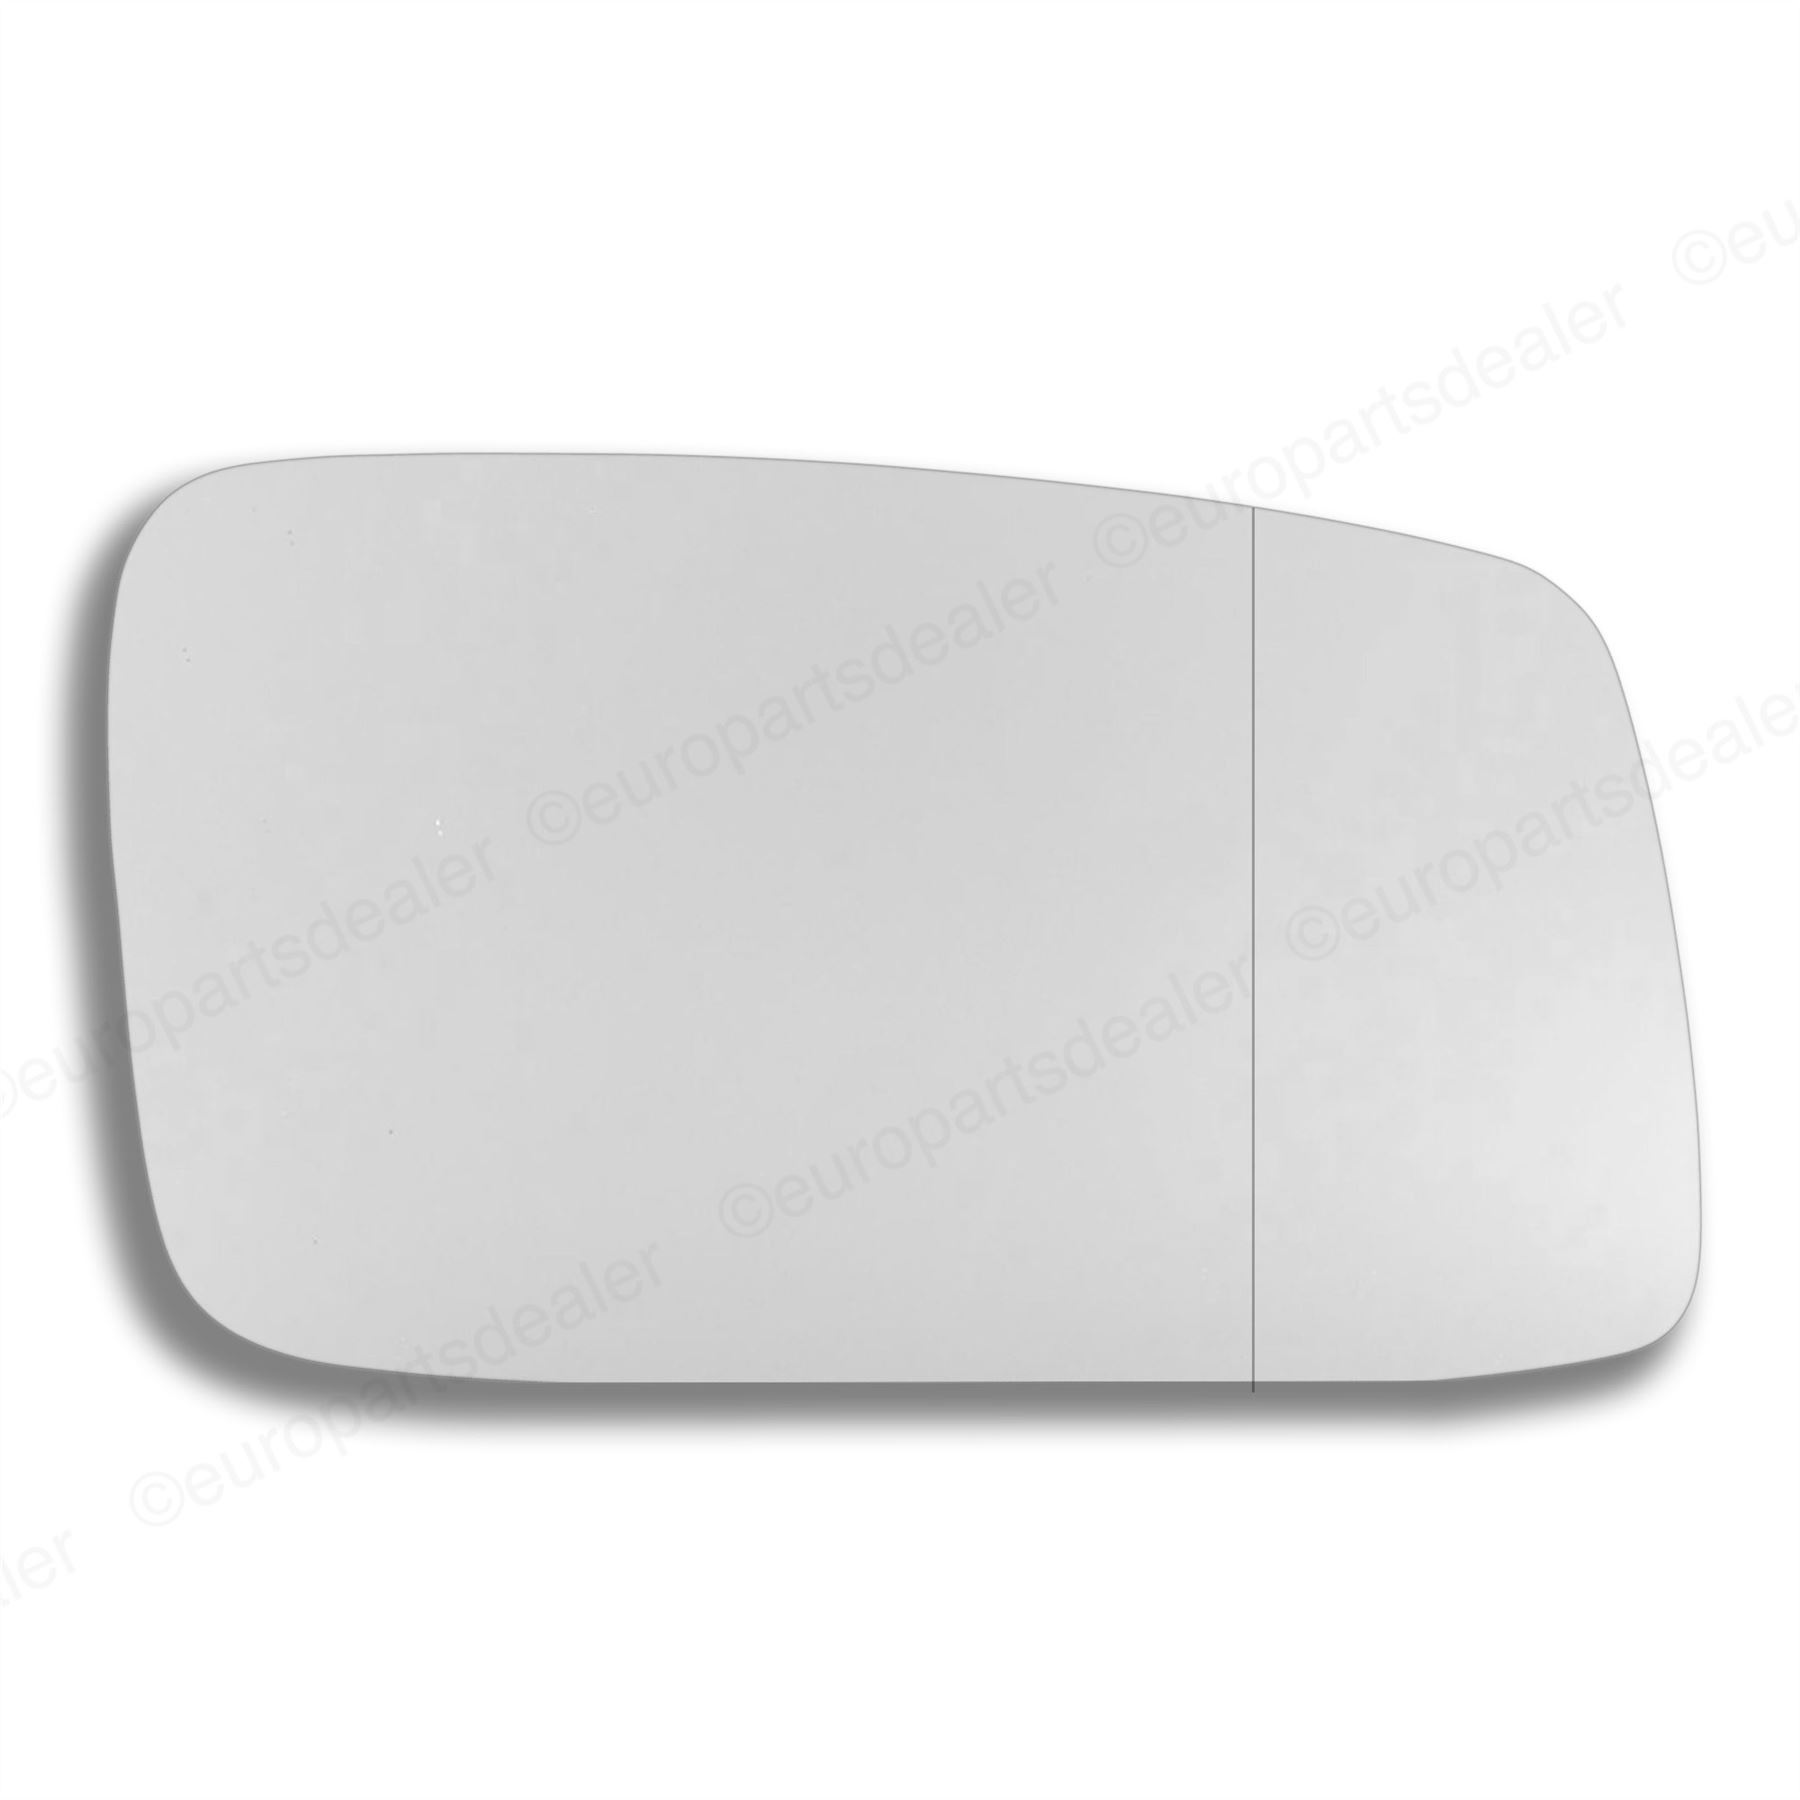 Volvo S70 V70 Right Driver wing mirror glass 1996-2000 side Wide Angle Heated